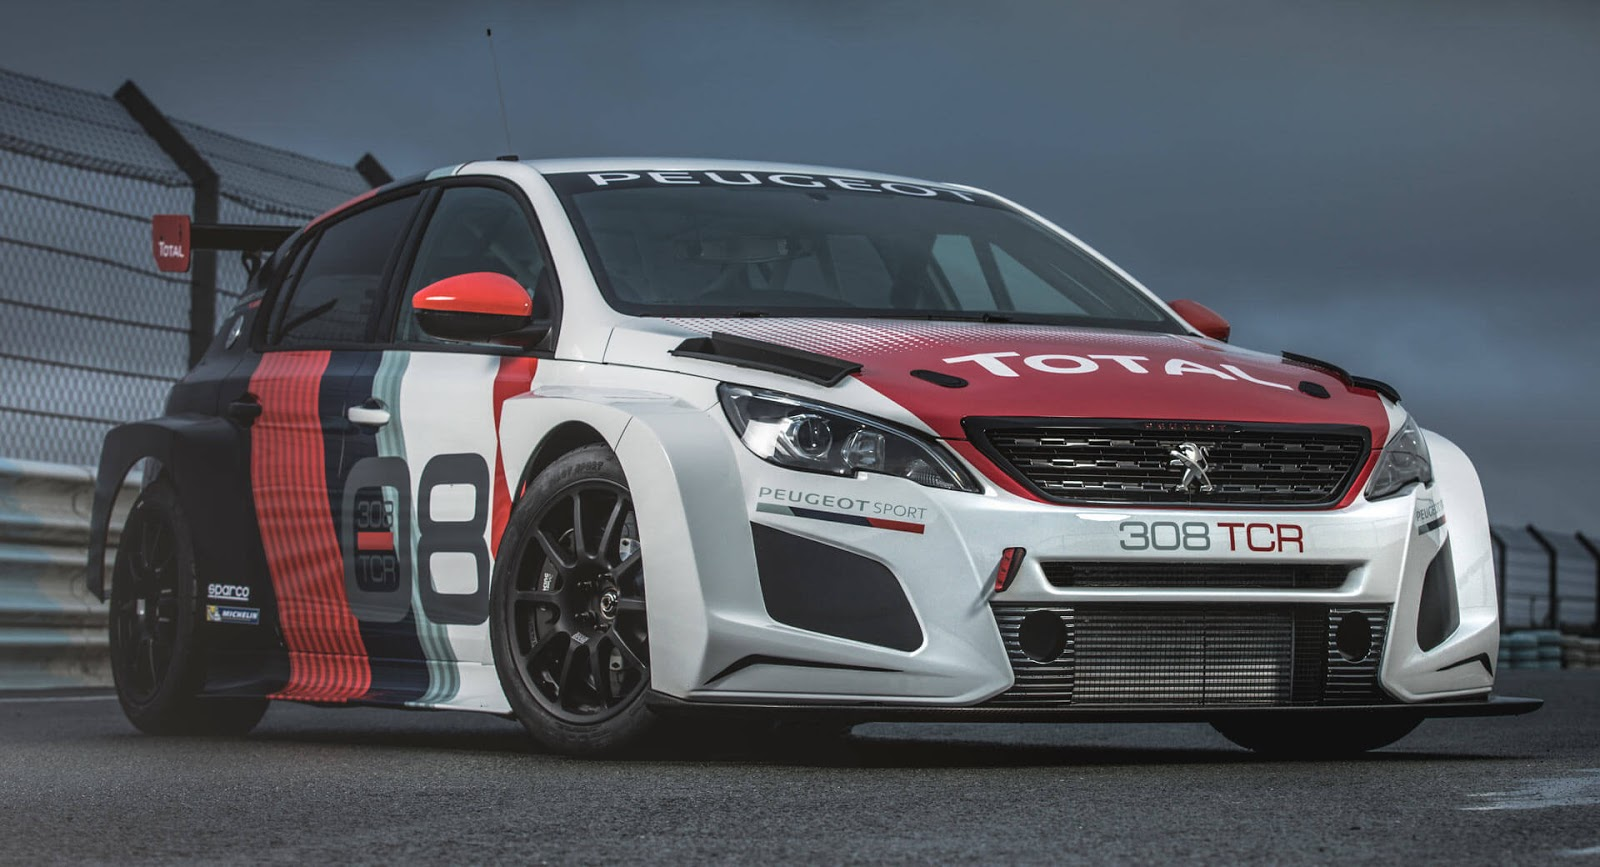 video peugeot presenteert 308tcr voor wtcr. Black Bedroom Furniture Sets. Home Design Ideas